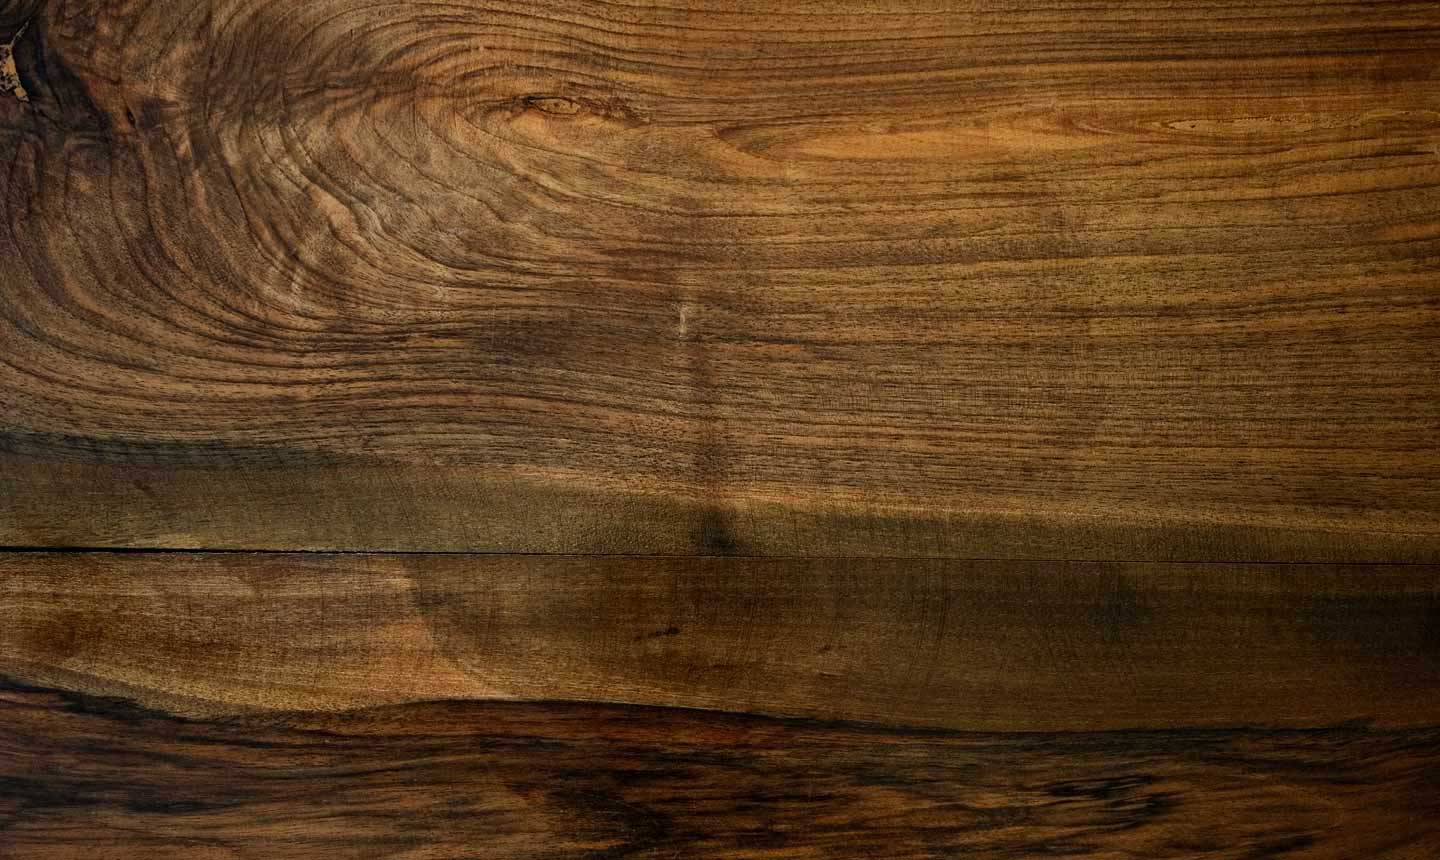 dark stained wood background texture flickr photo sharing